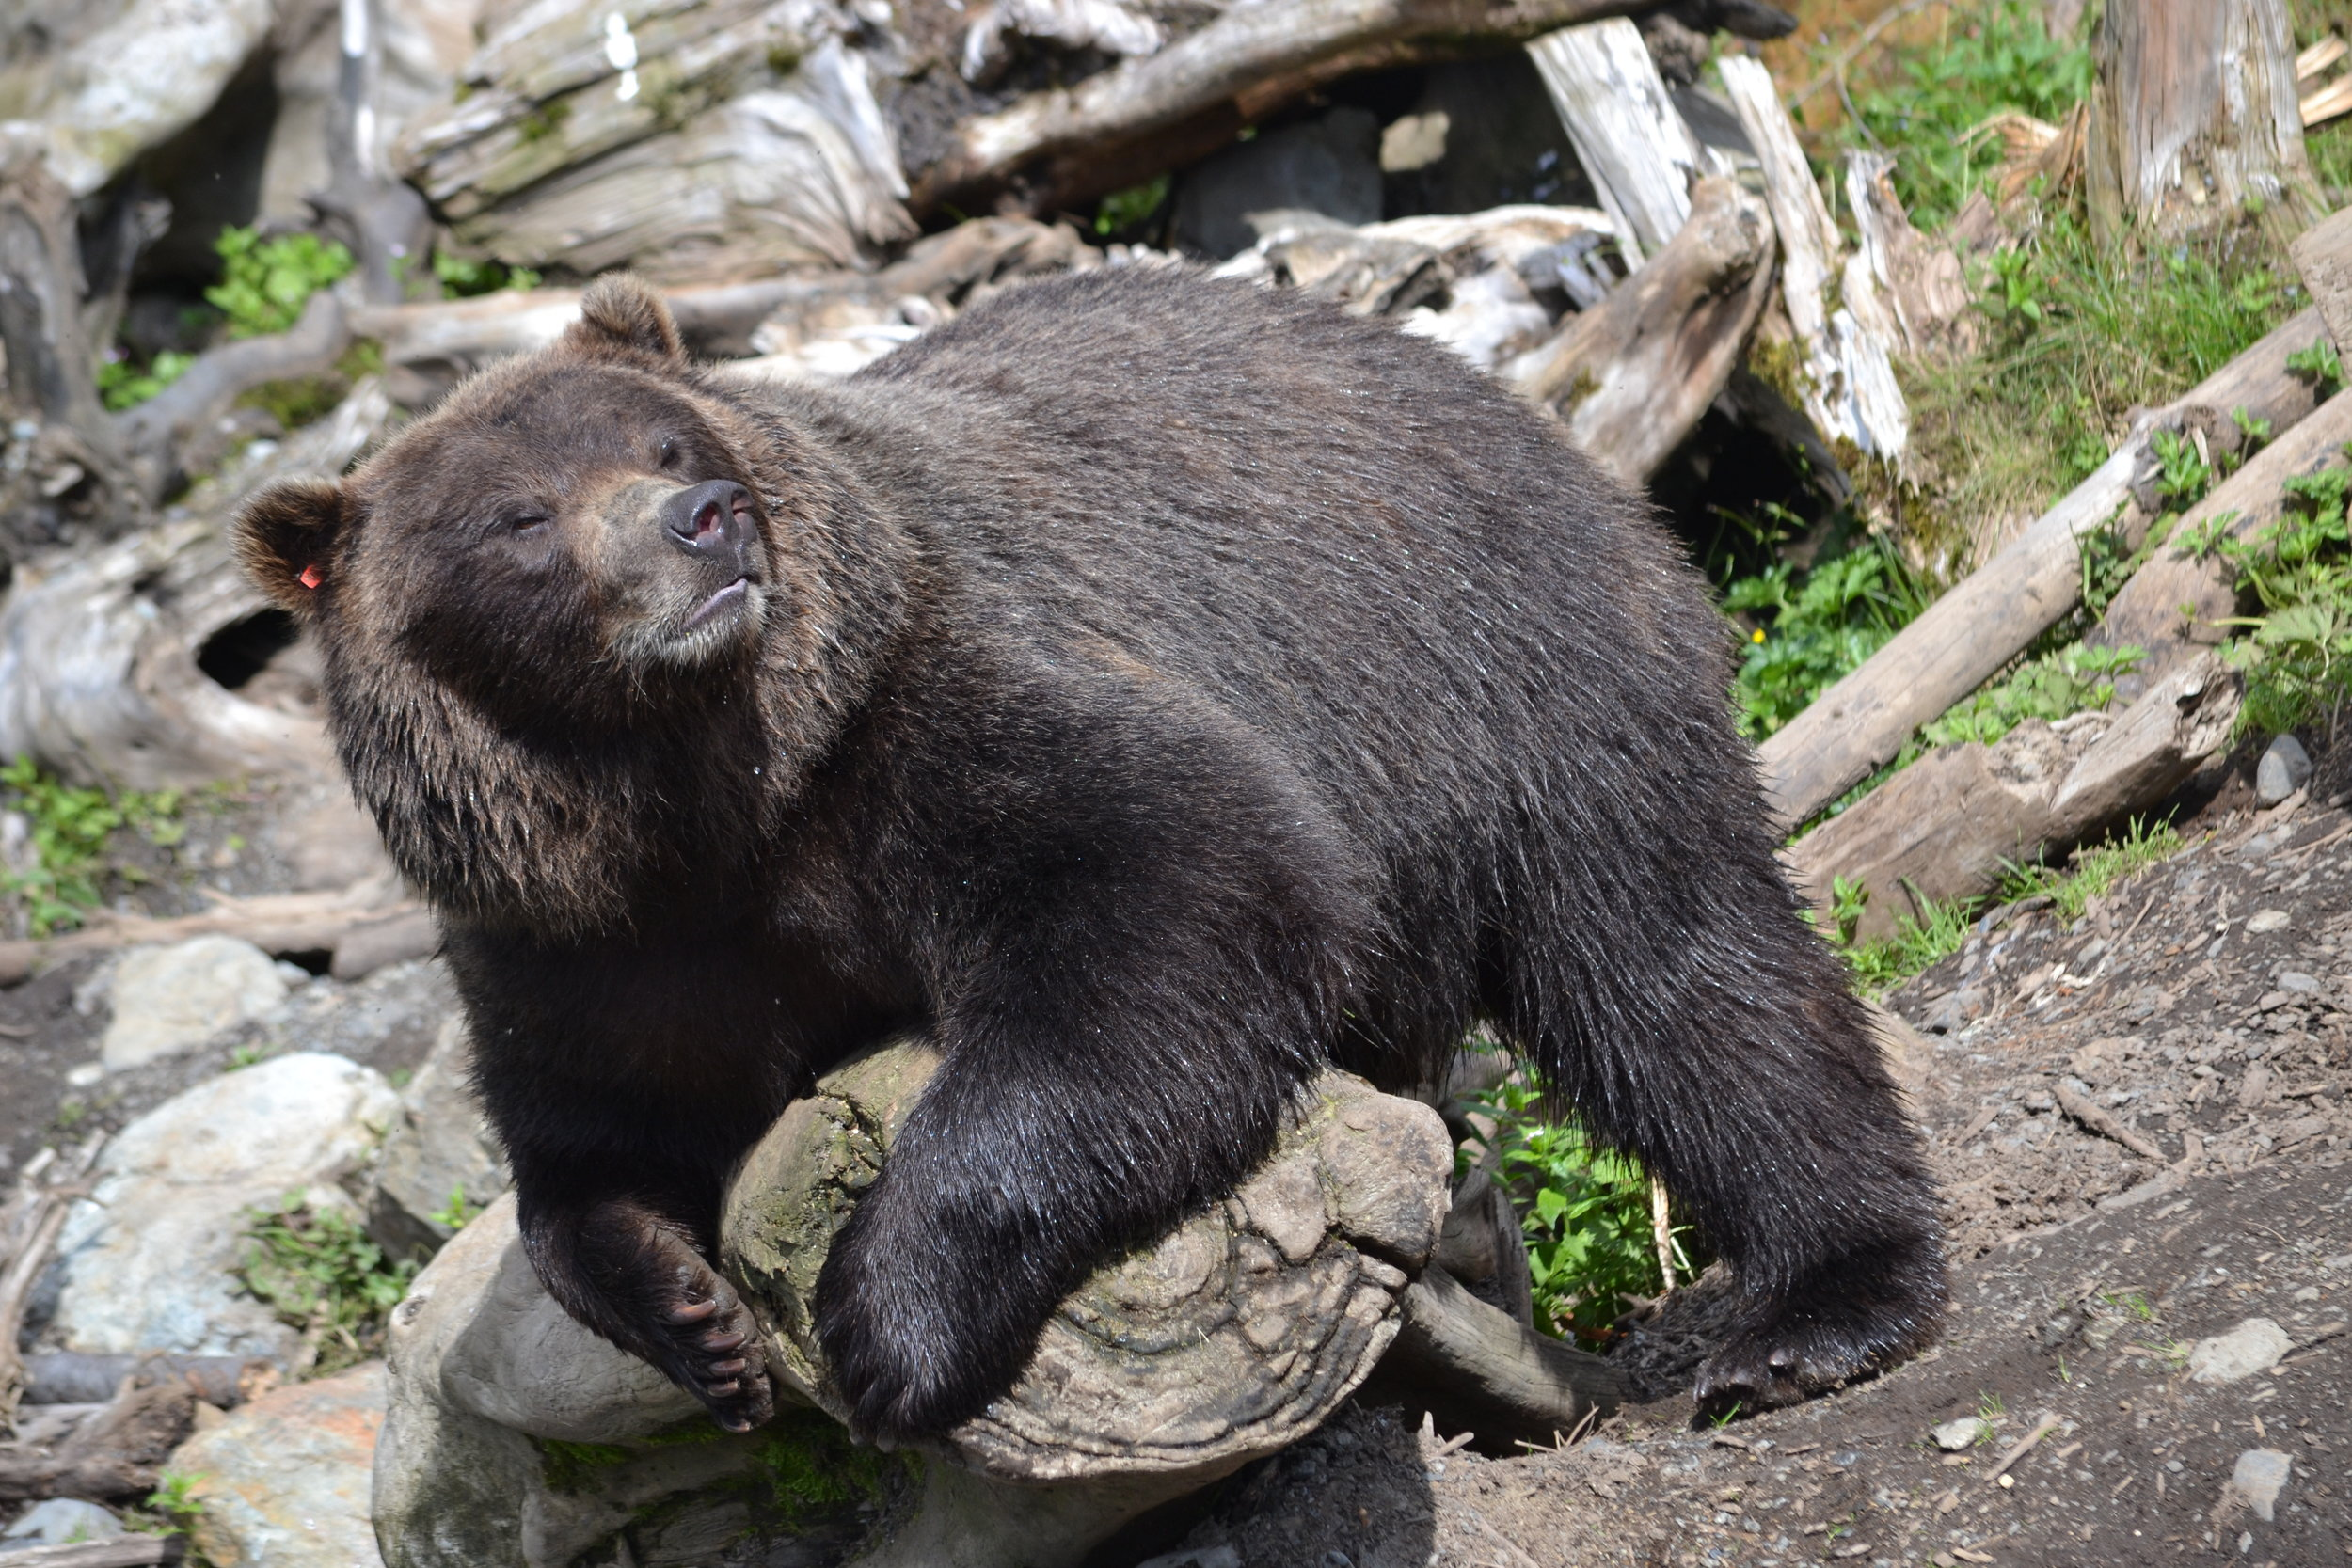 Toby, Fortress of the Bear's female brown bear.